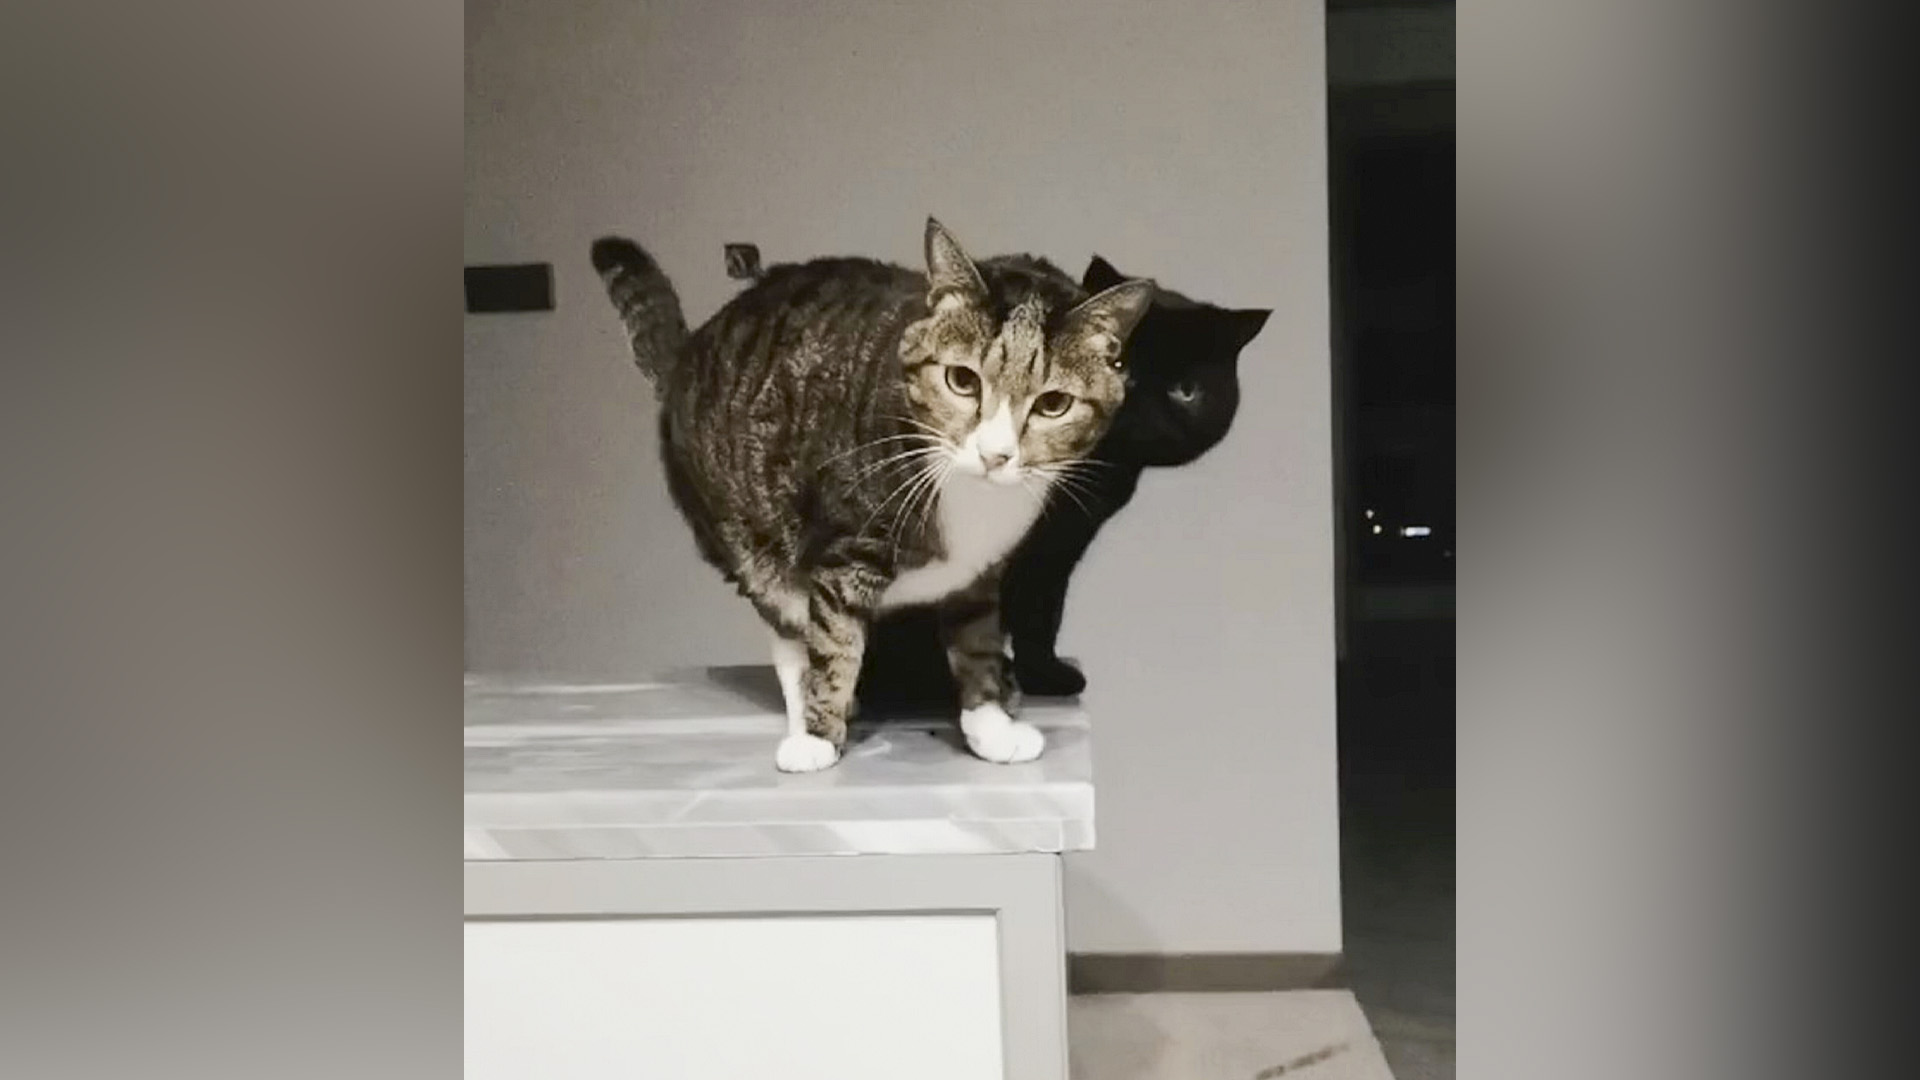 VIDEO: Are Mew Copying Me? Black Cat Plays At Being His Tabby Pal's Shadow